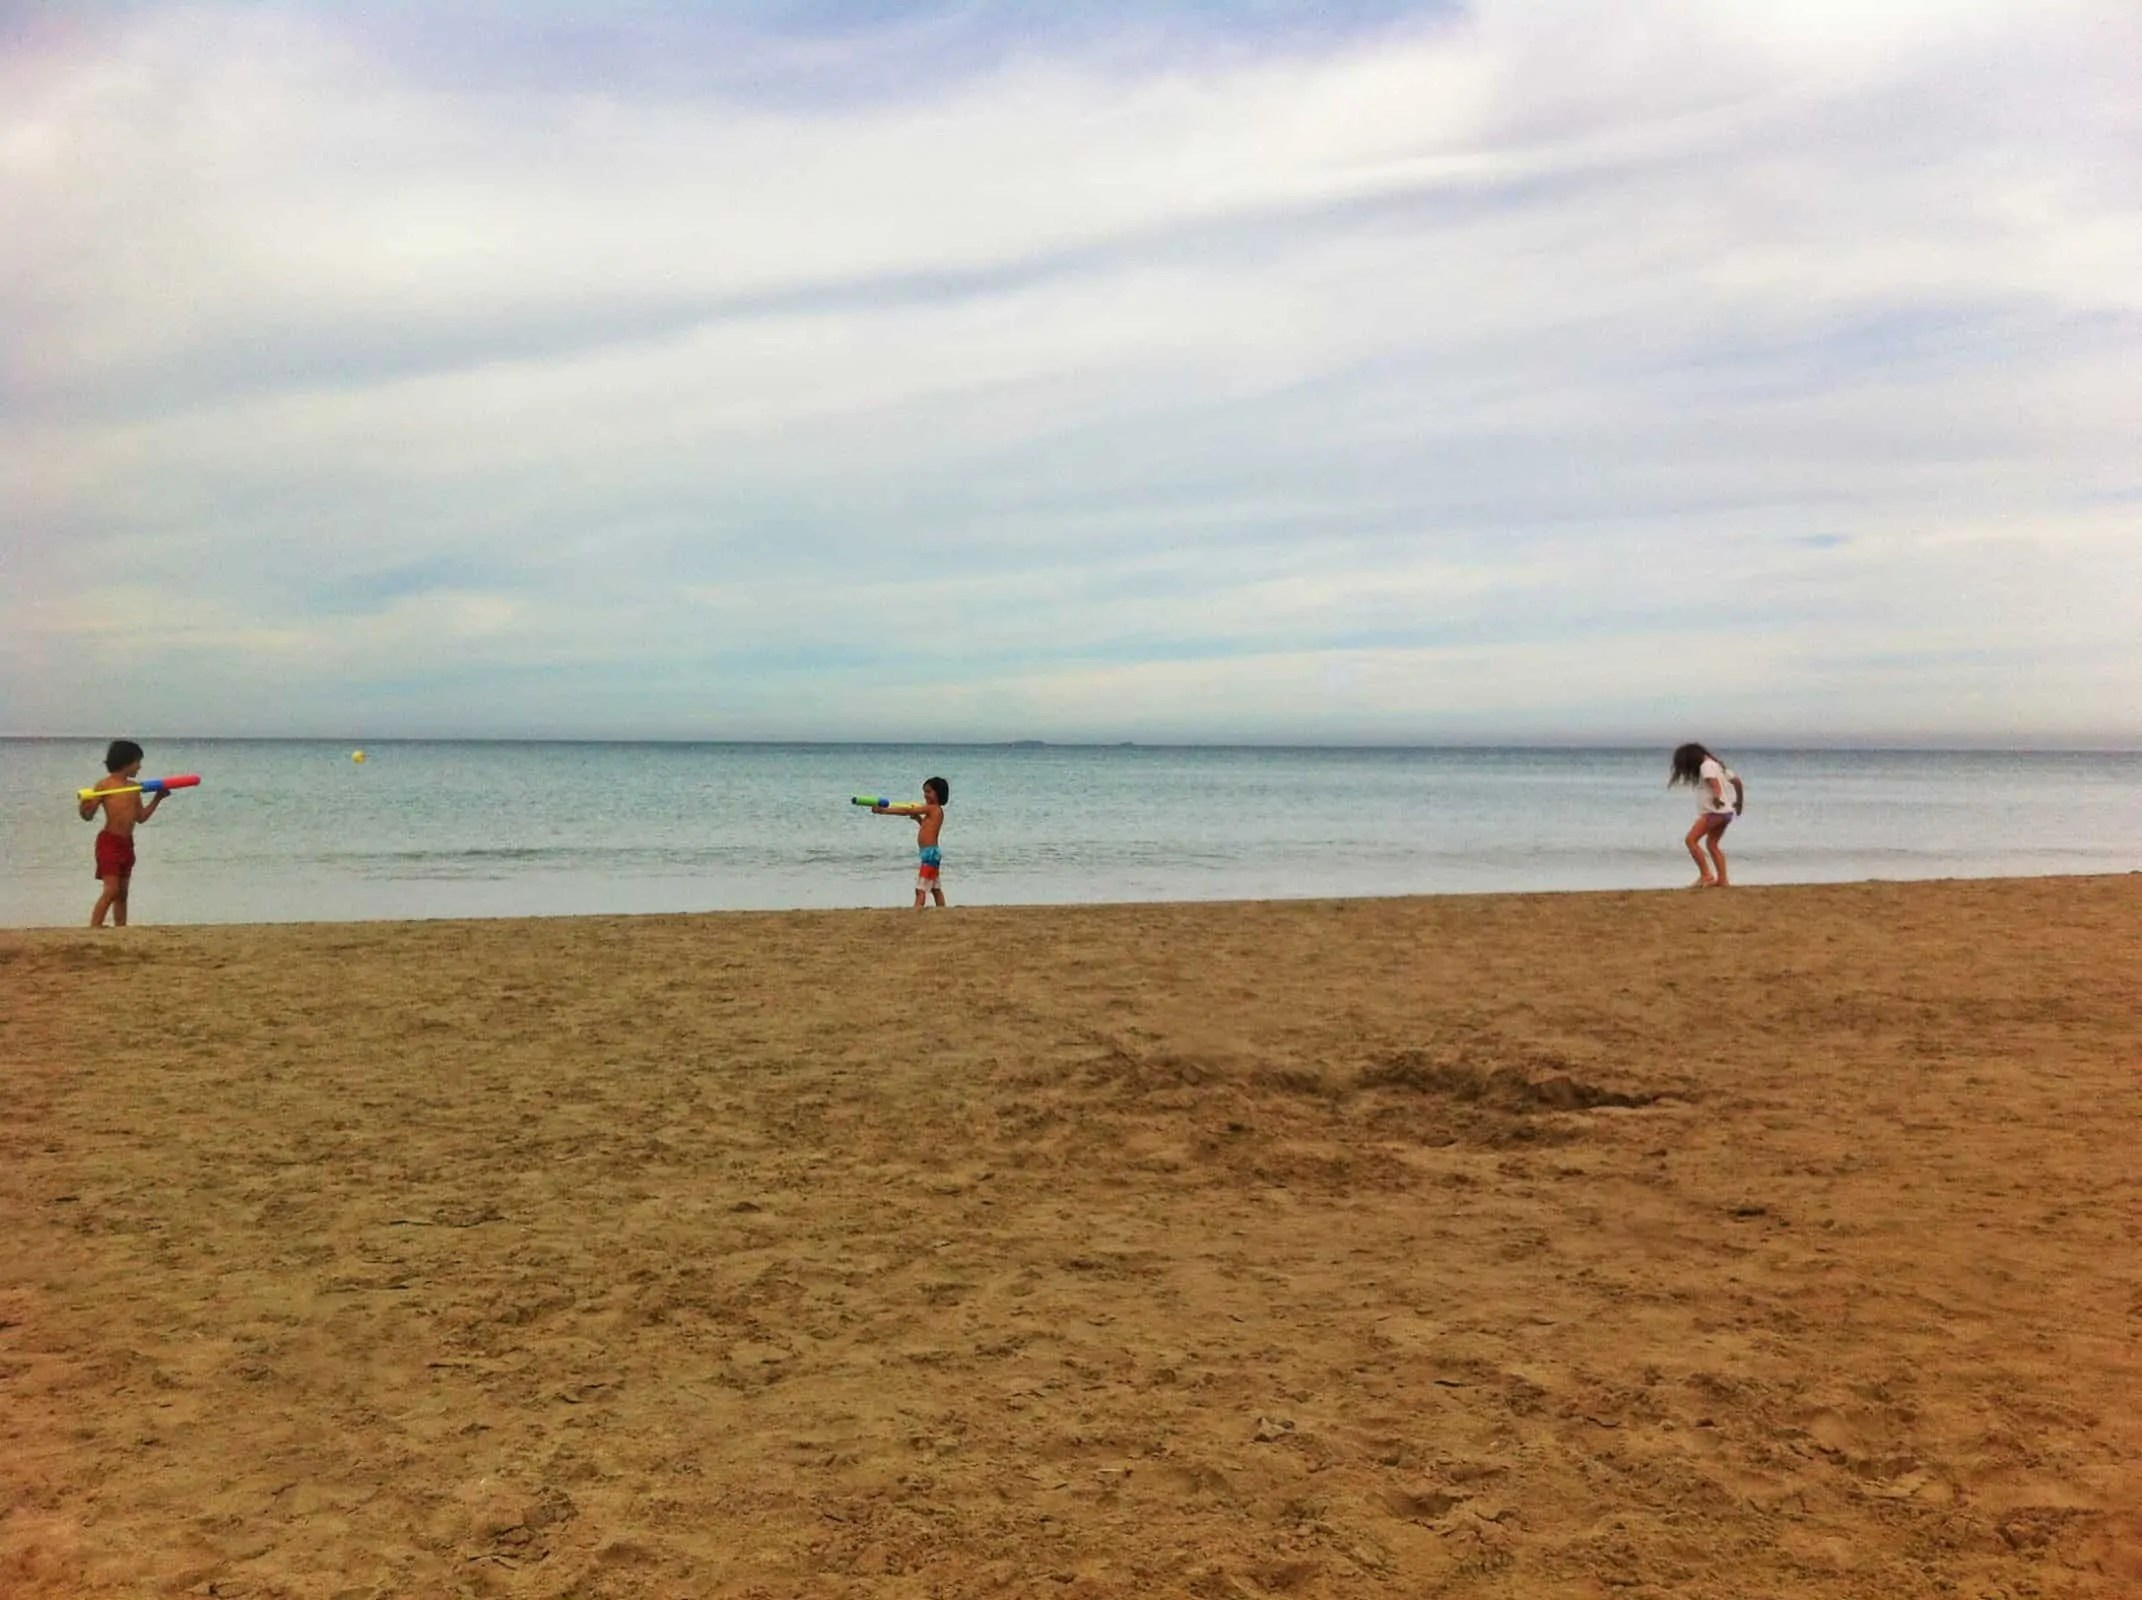 Water pistol fight at Entremares beach in La Manga